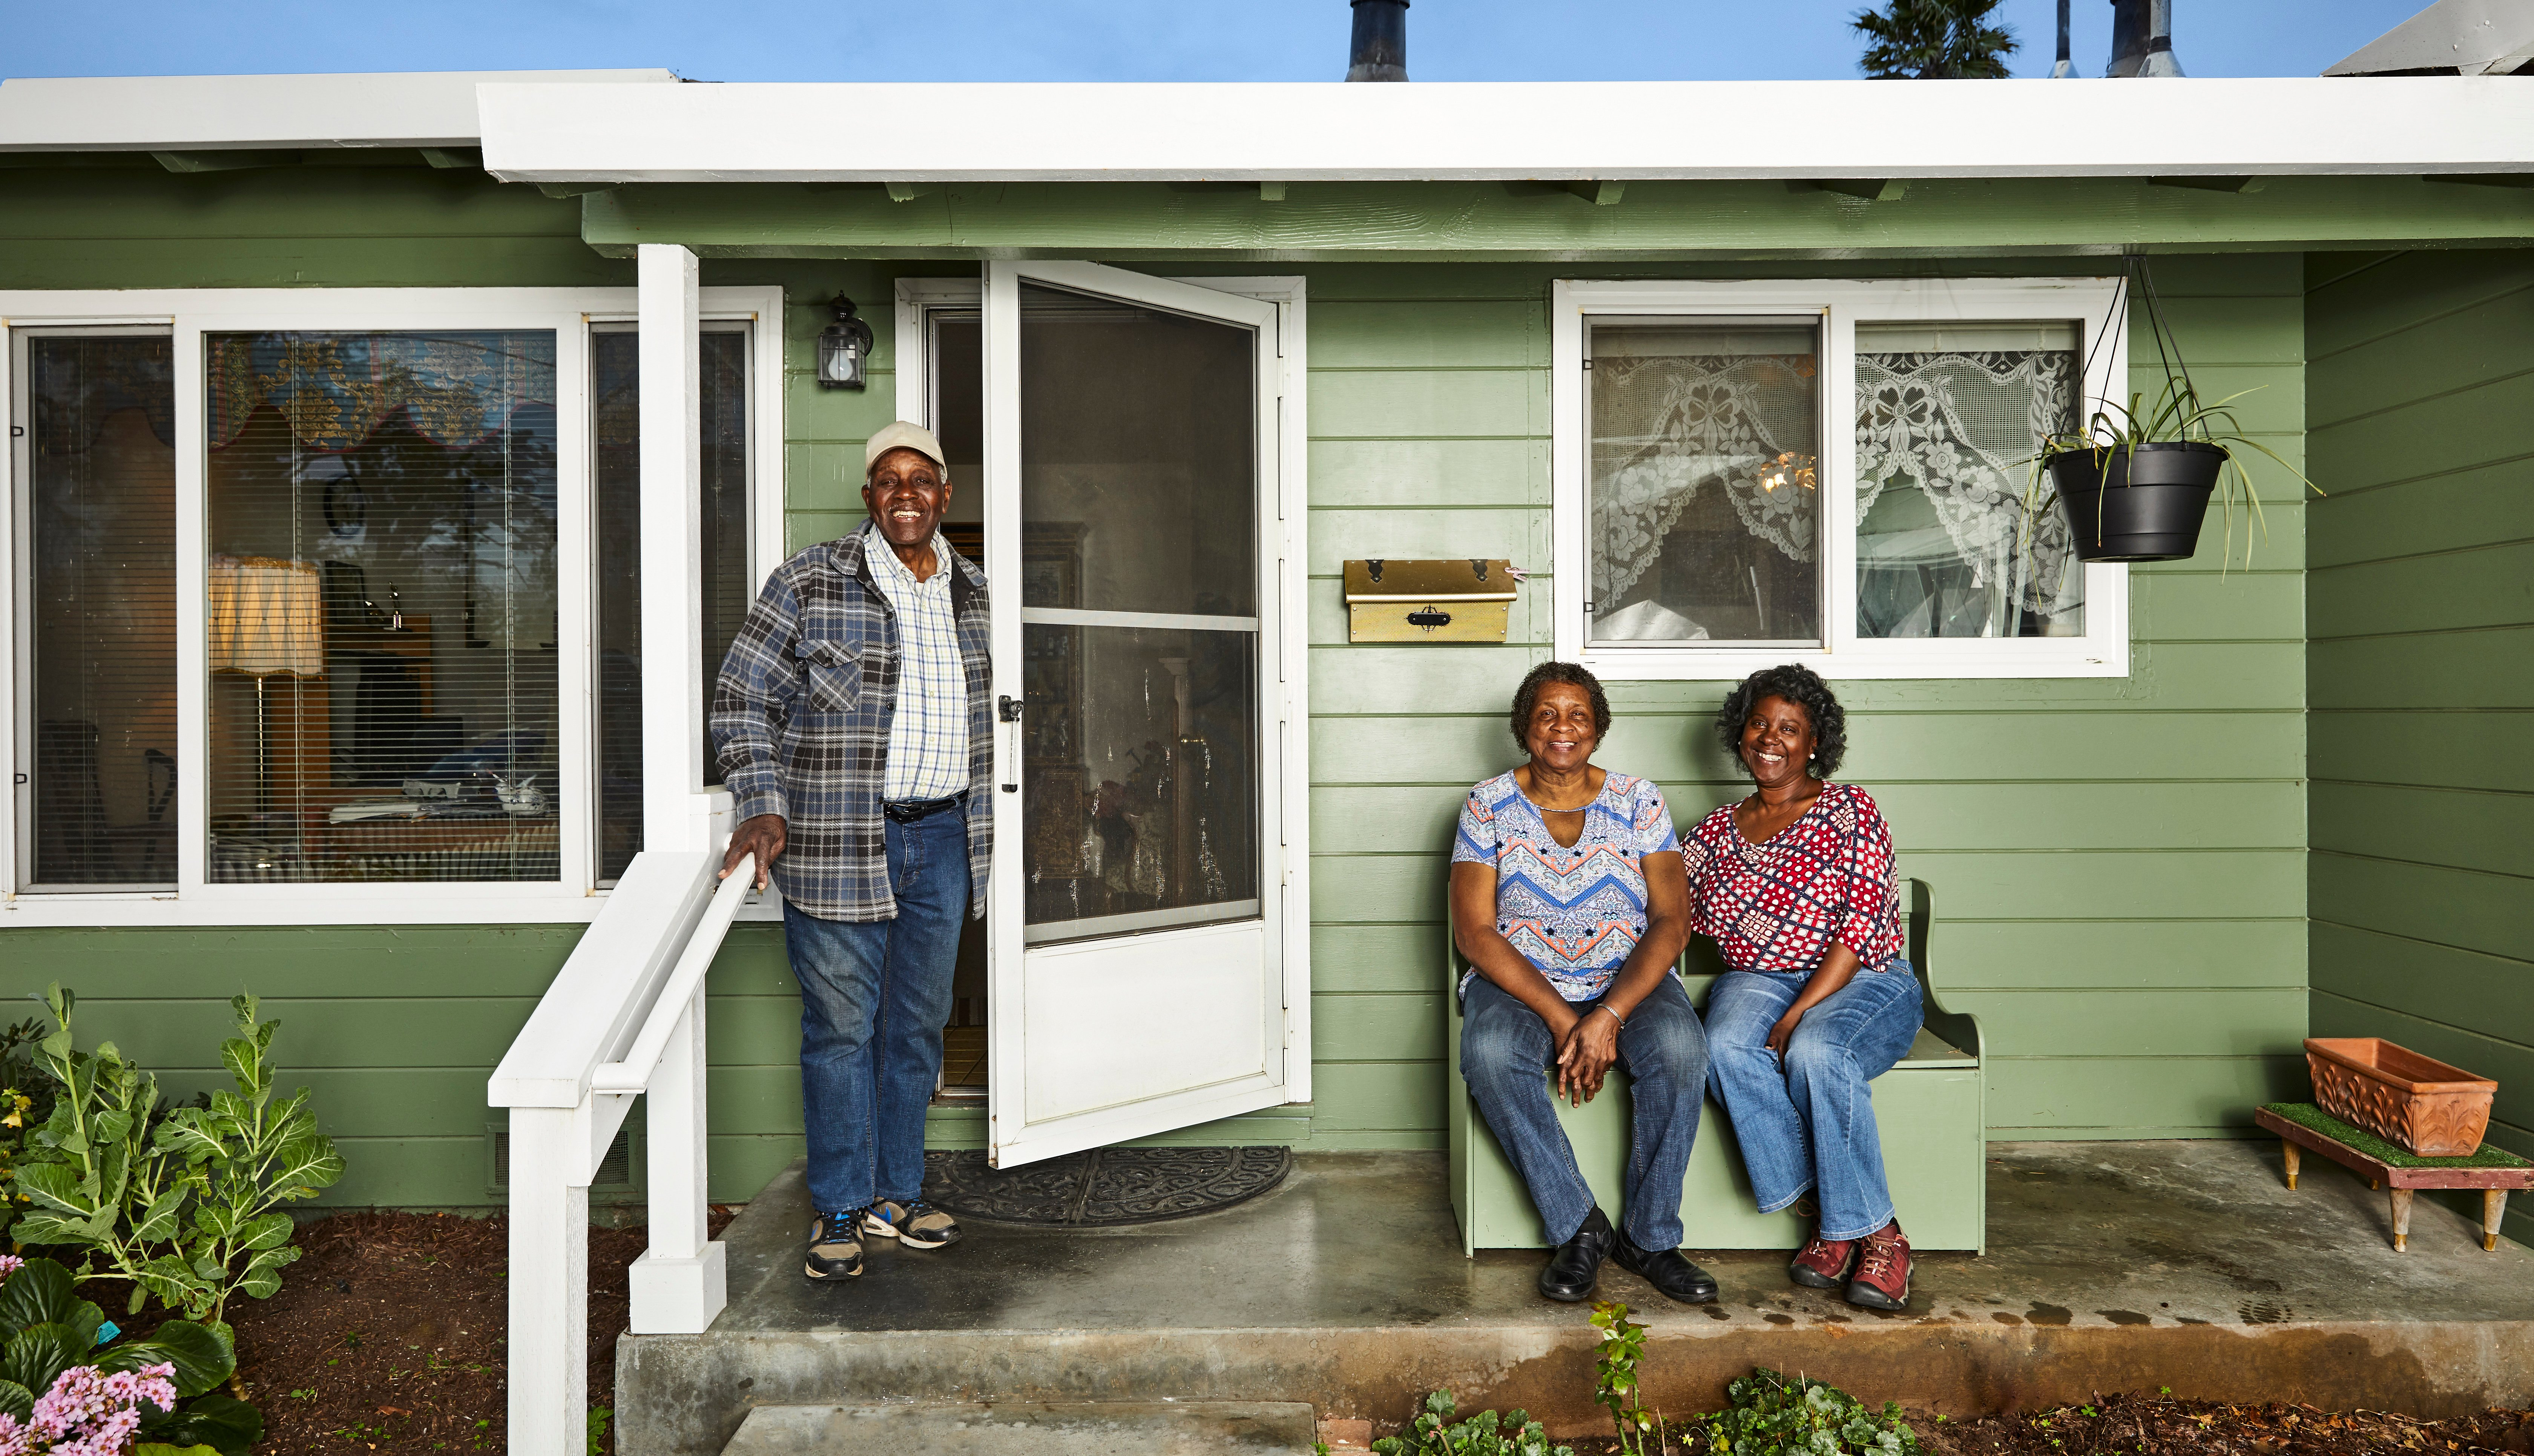 La familia Whitley, una pareja mayor con su hija adulta, en su casa en Santa Cruz, California.